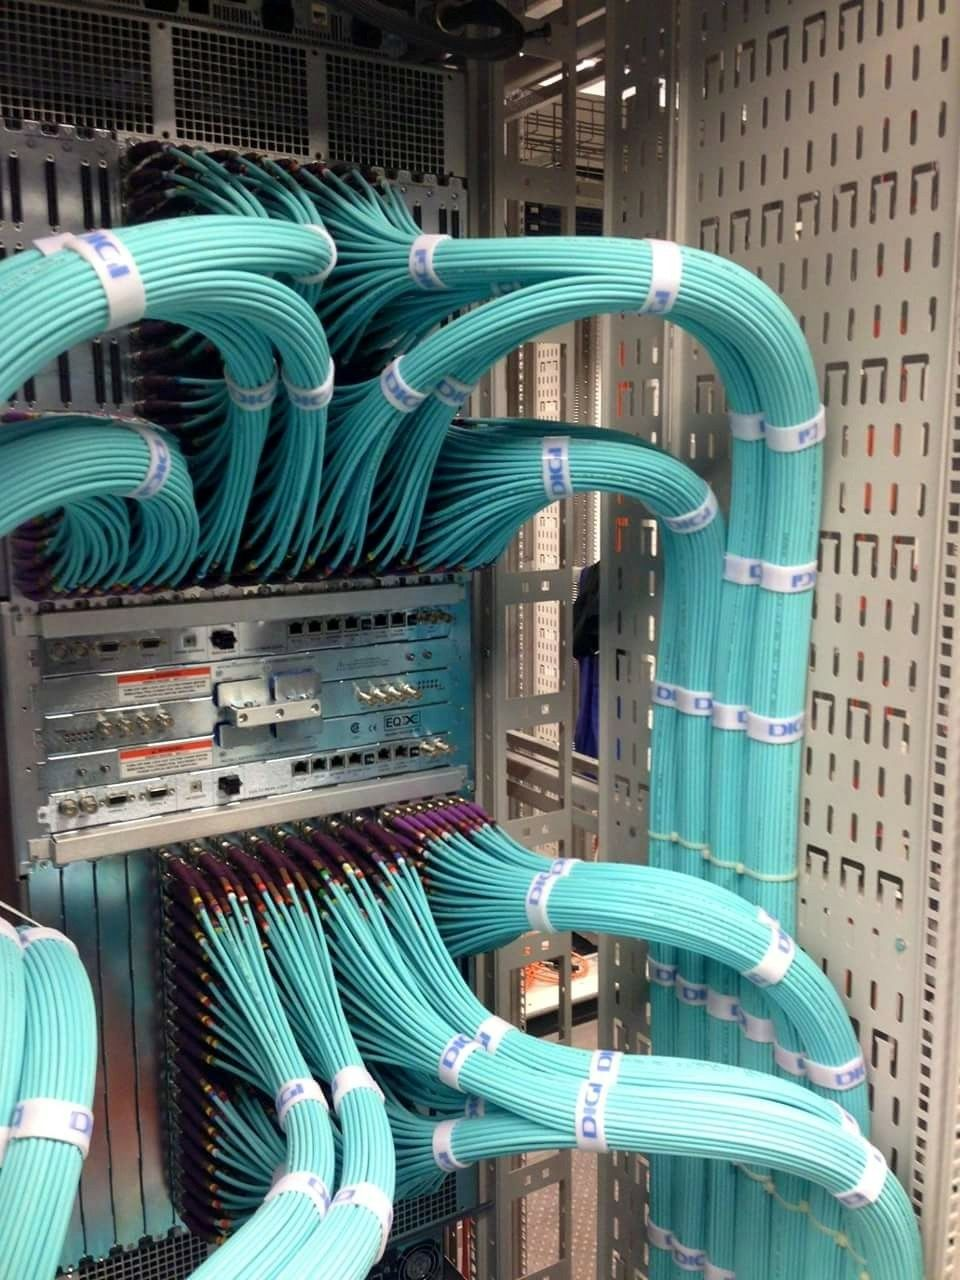 Pin by lauren . on Ace in the Hole | Pinterest | Cable, Tech and Ars ...